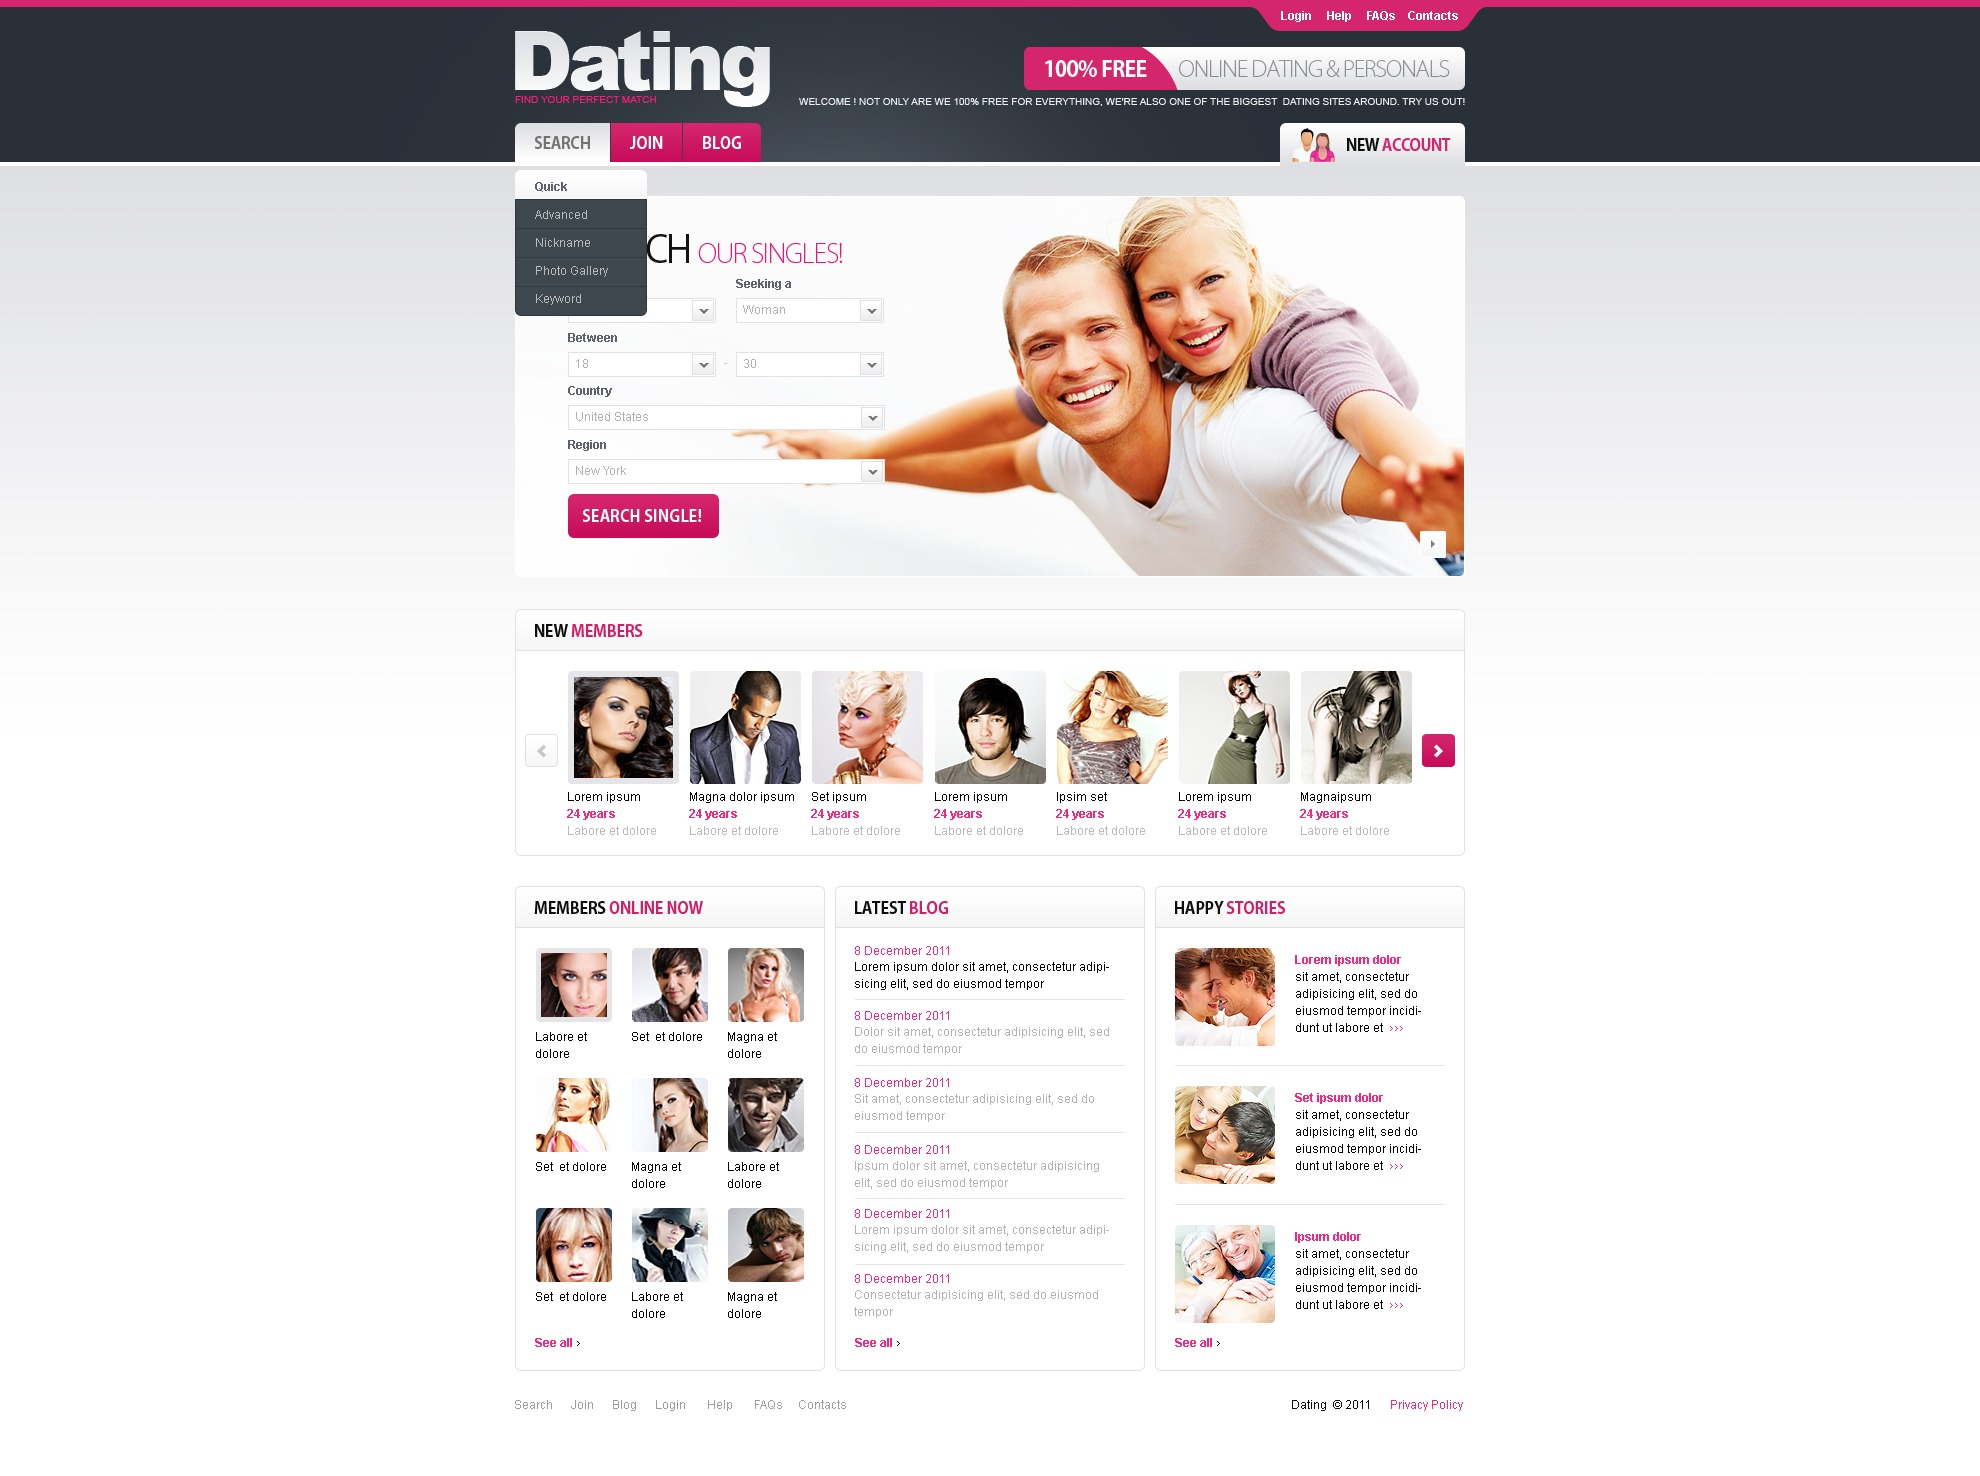 100 free internet dating from